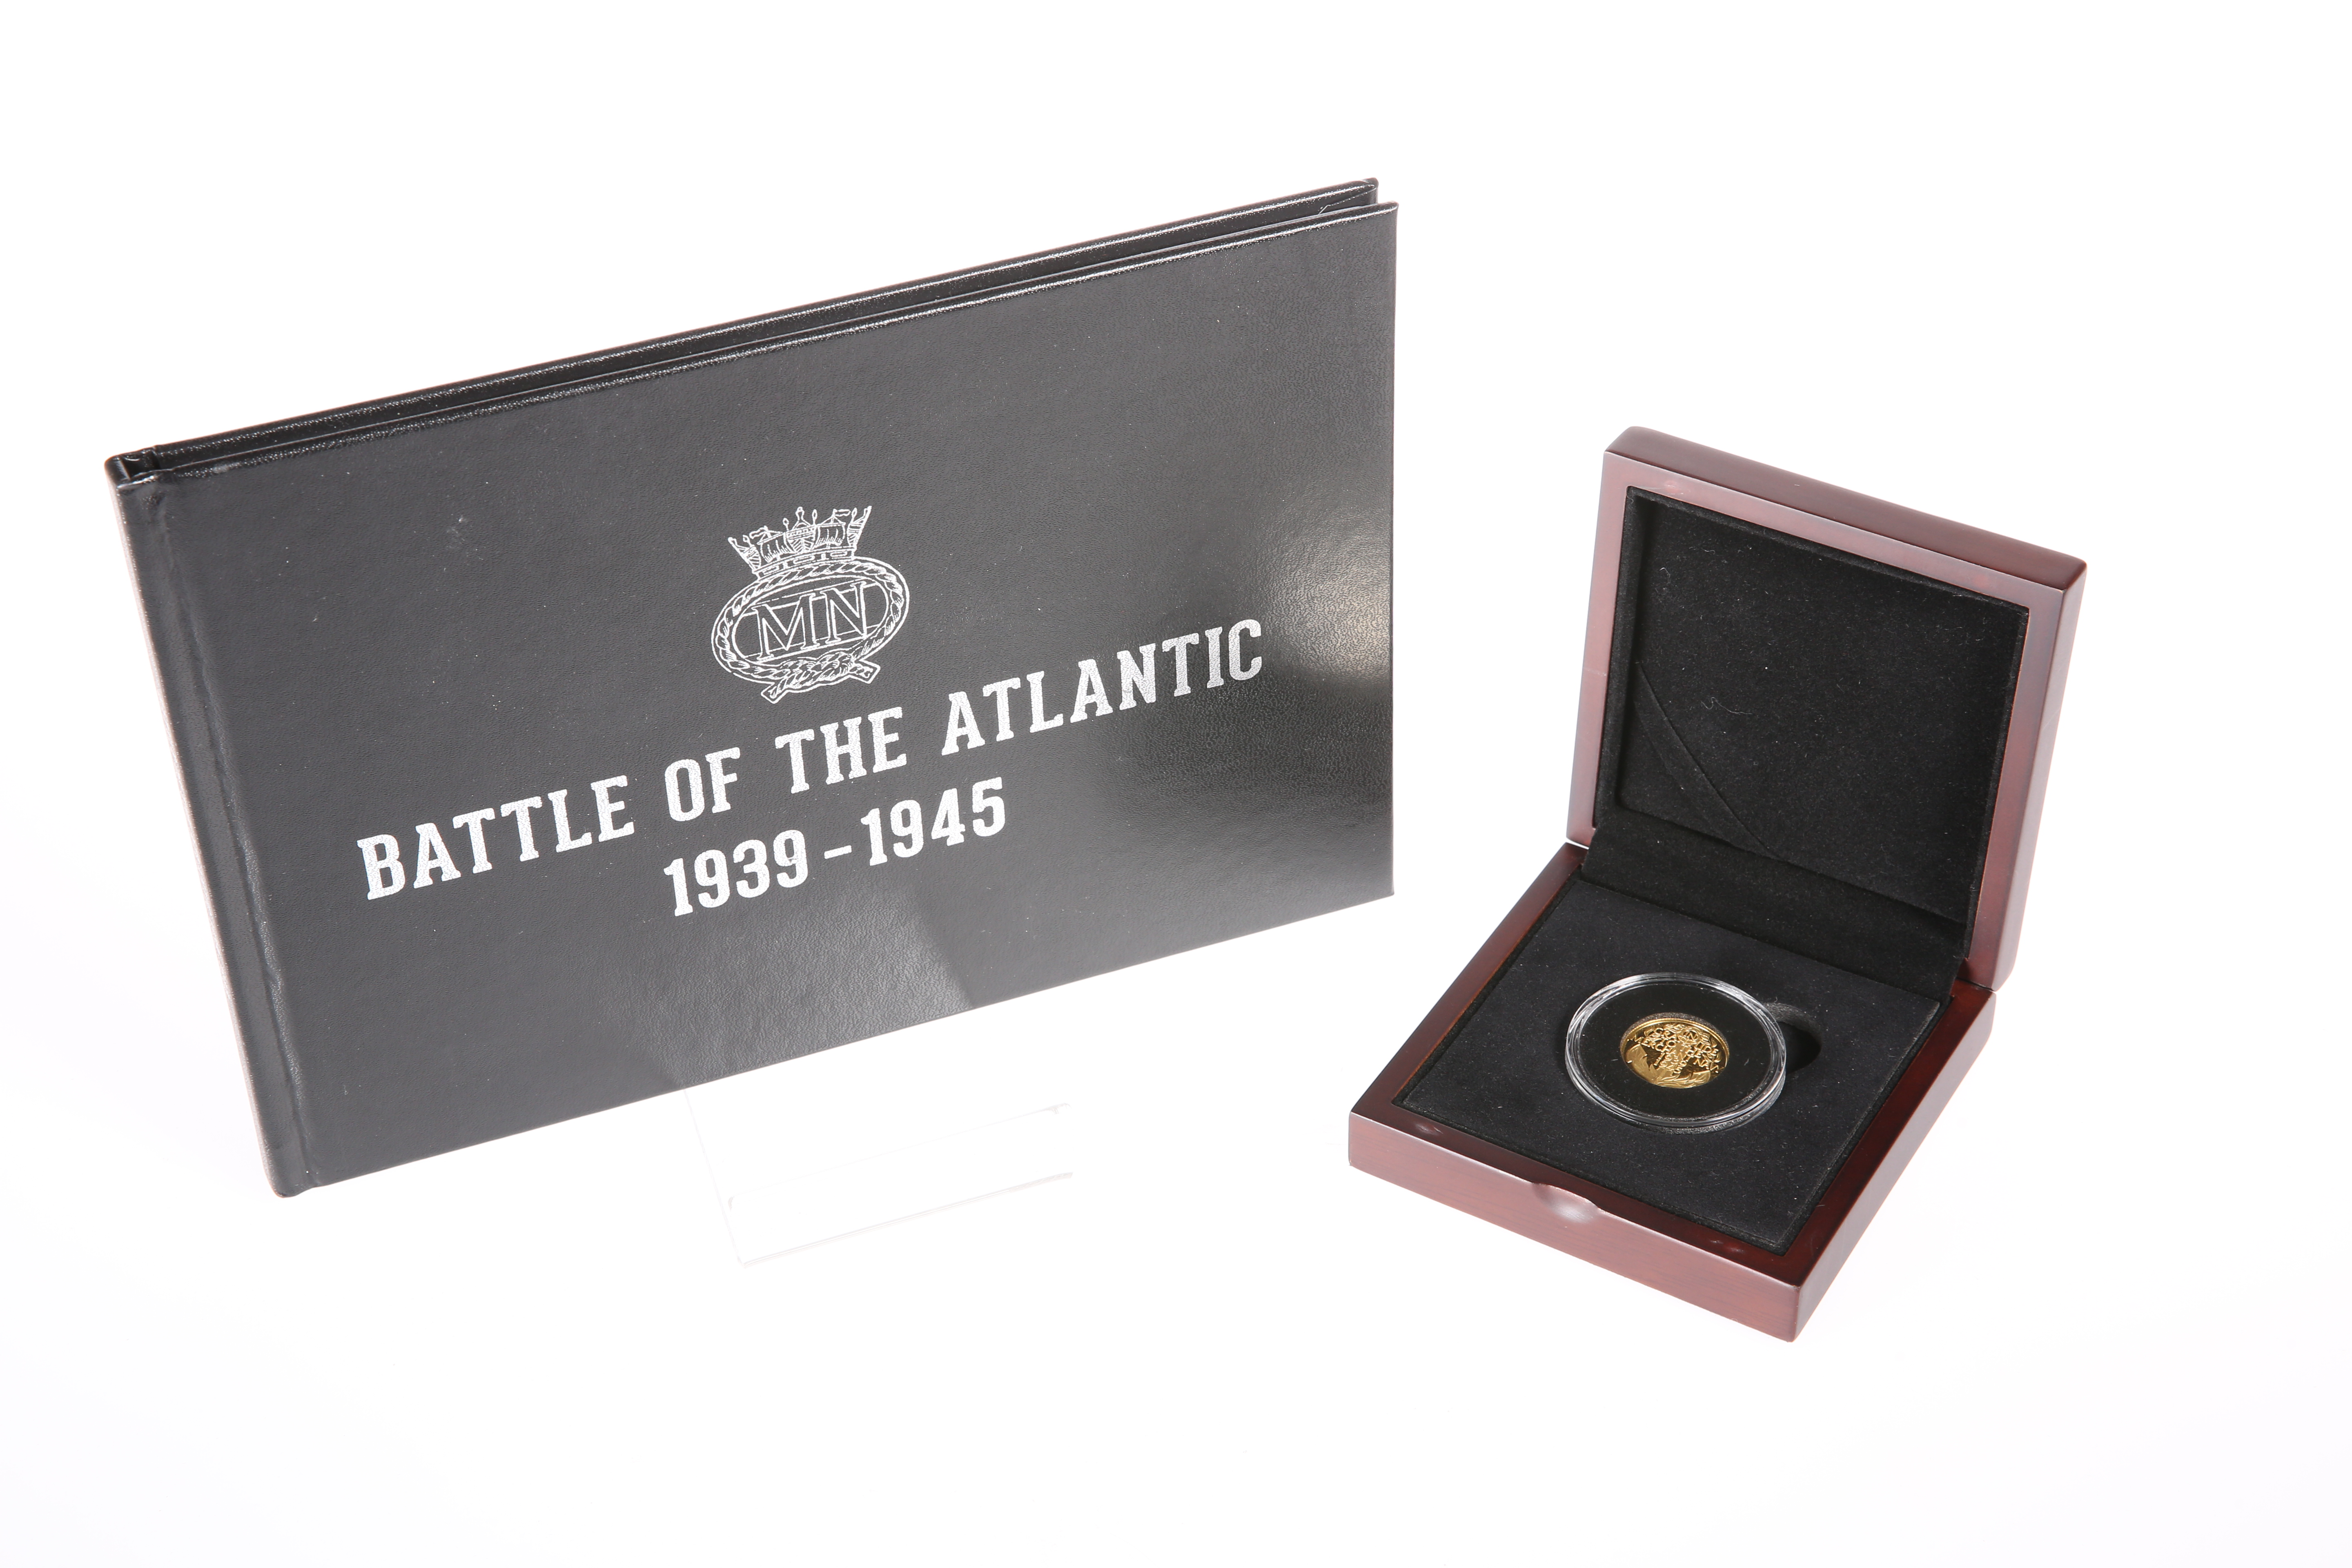 """A GOLD PROOF QUARTER CROWN, """"IN GRATITUDE TO THE MERCHANT NAVY 1939-1945"""", boxed, with certificate - Image 3 of 3"""